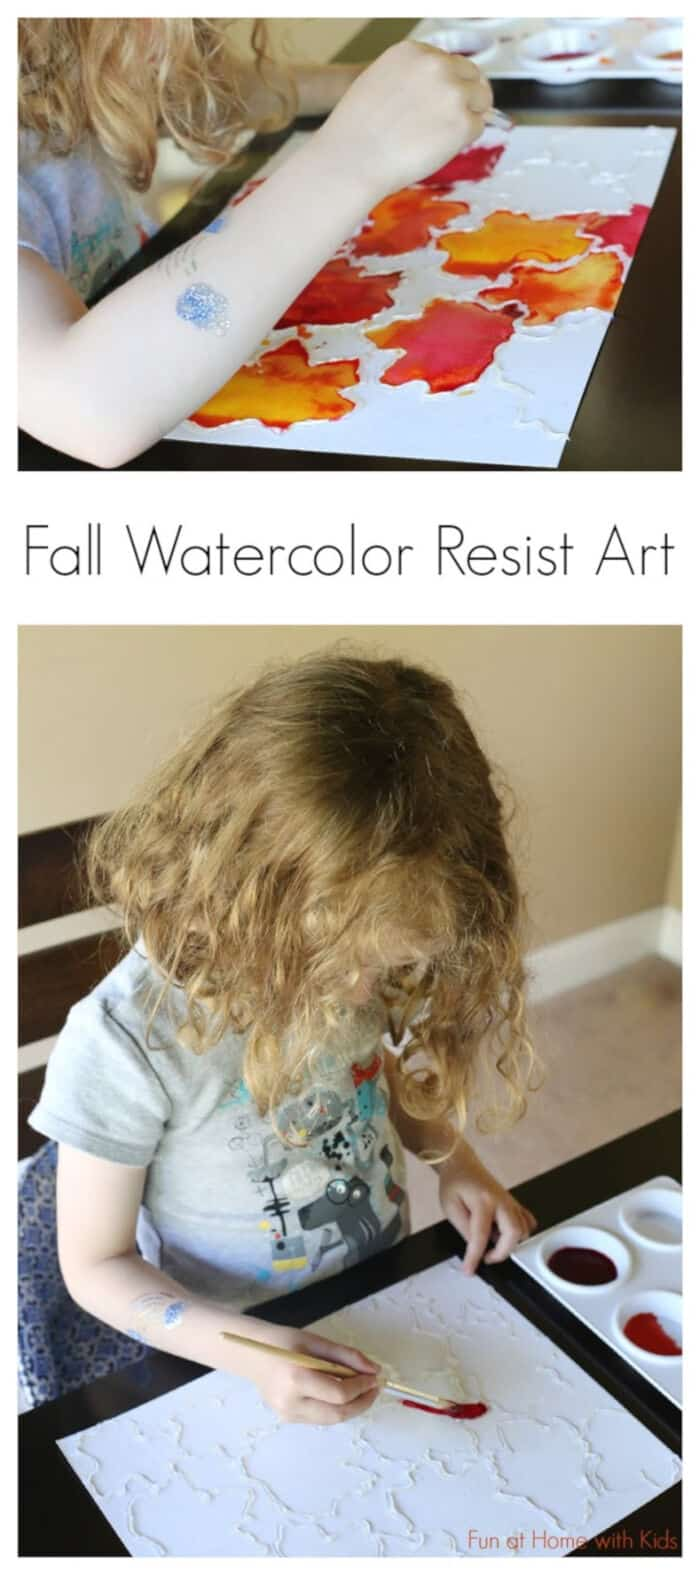 Fall-Leaf-Watercolor-Resist-Art-by-Fun-at-Home-with-Kids